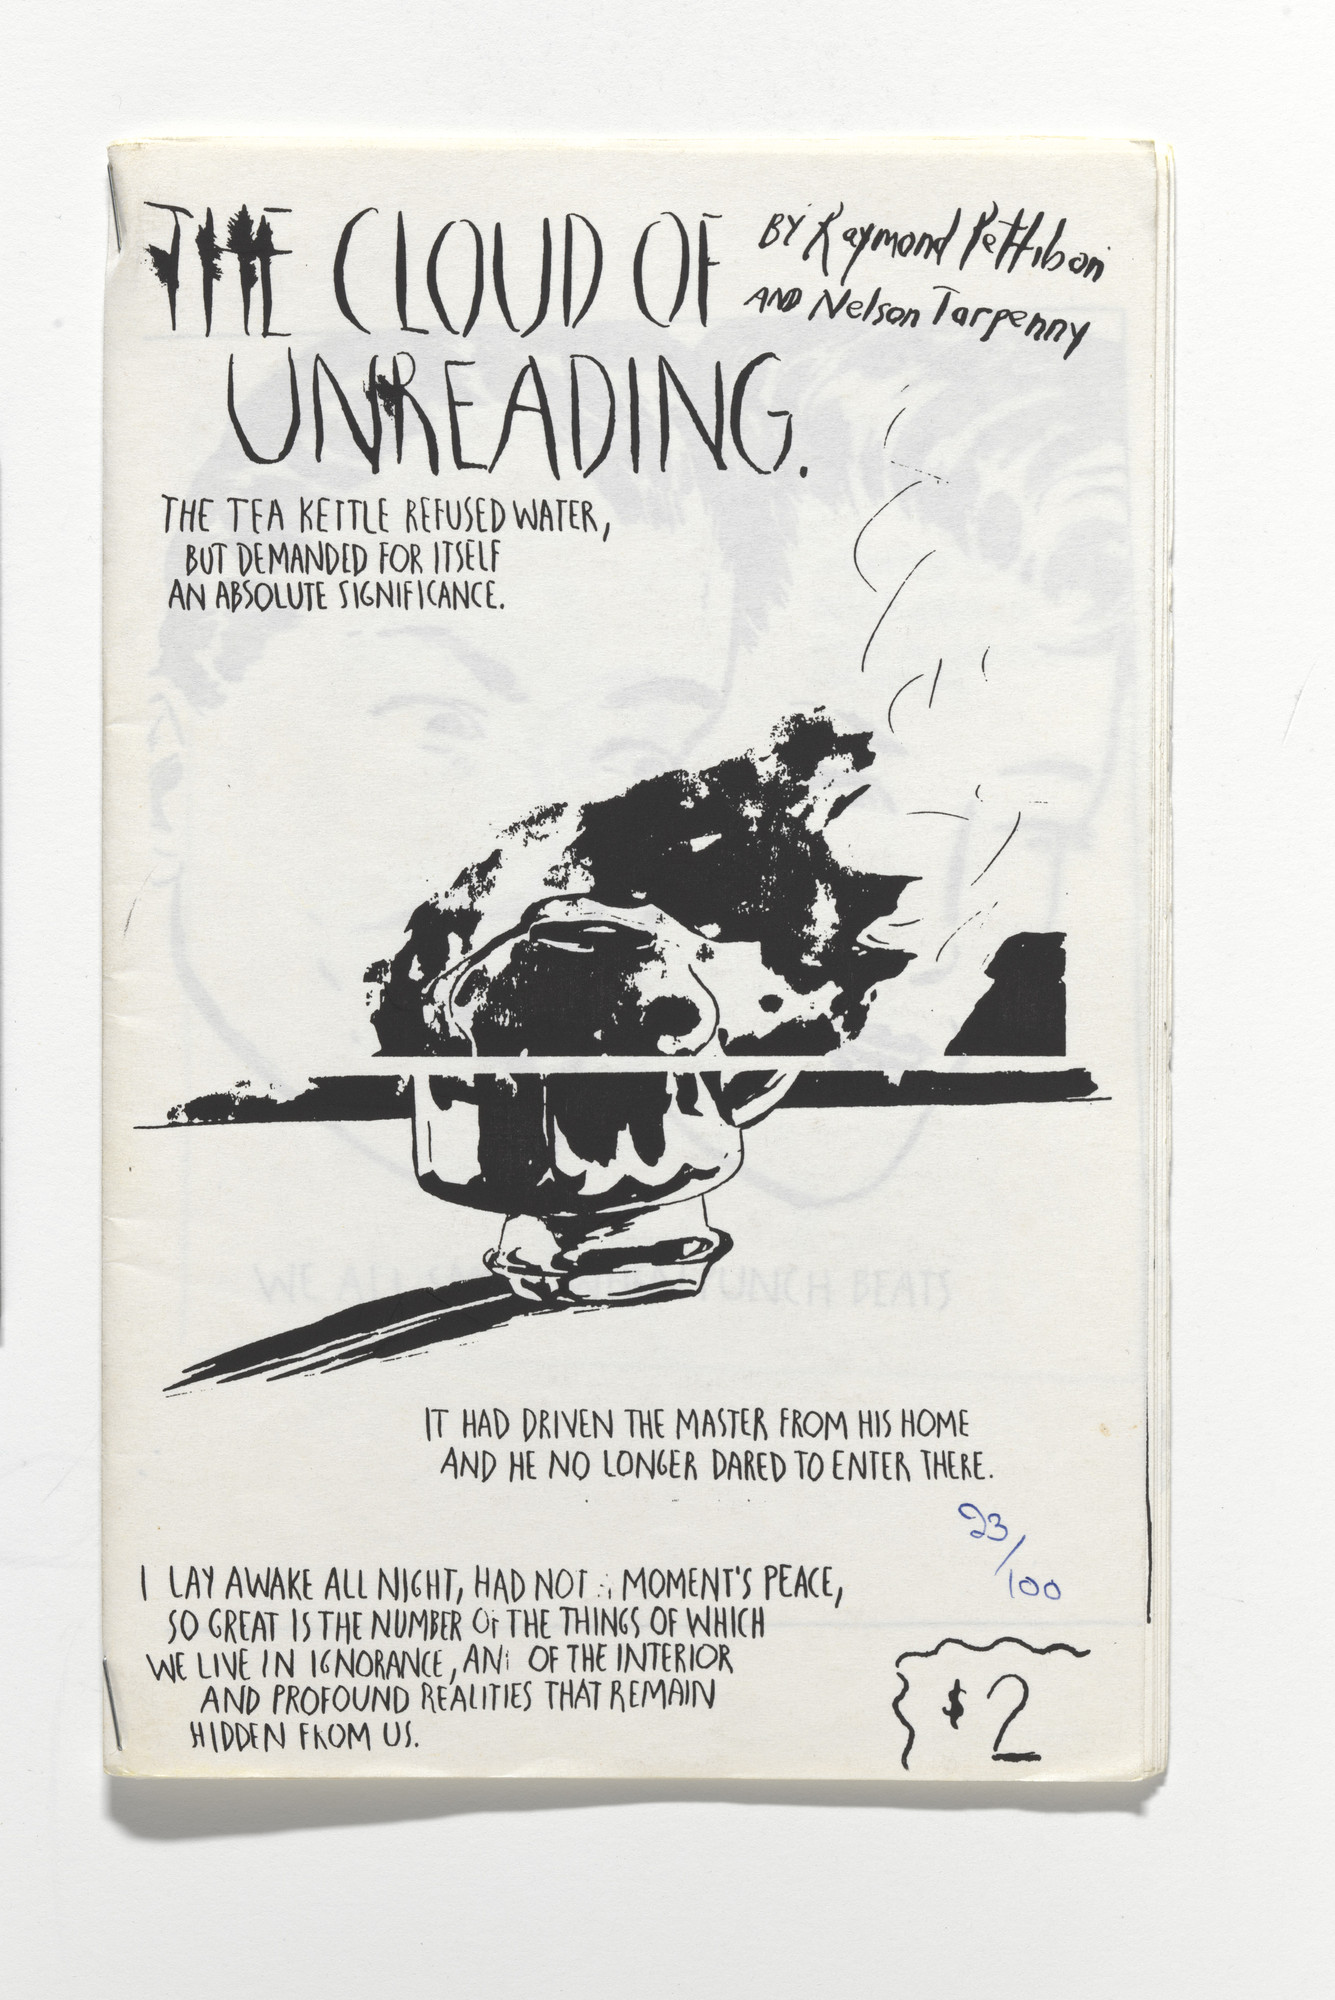 Raymond Pettibon, Nelson Tarpenny. The Cloud of Unreading. 1992